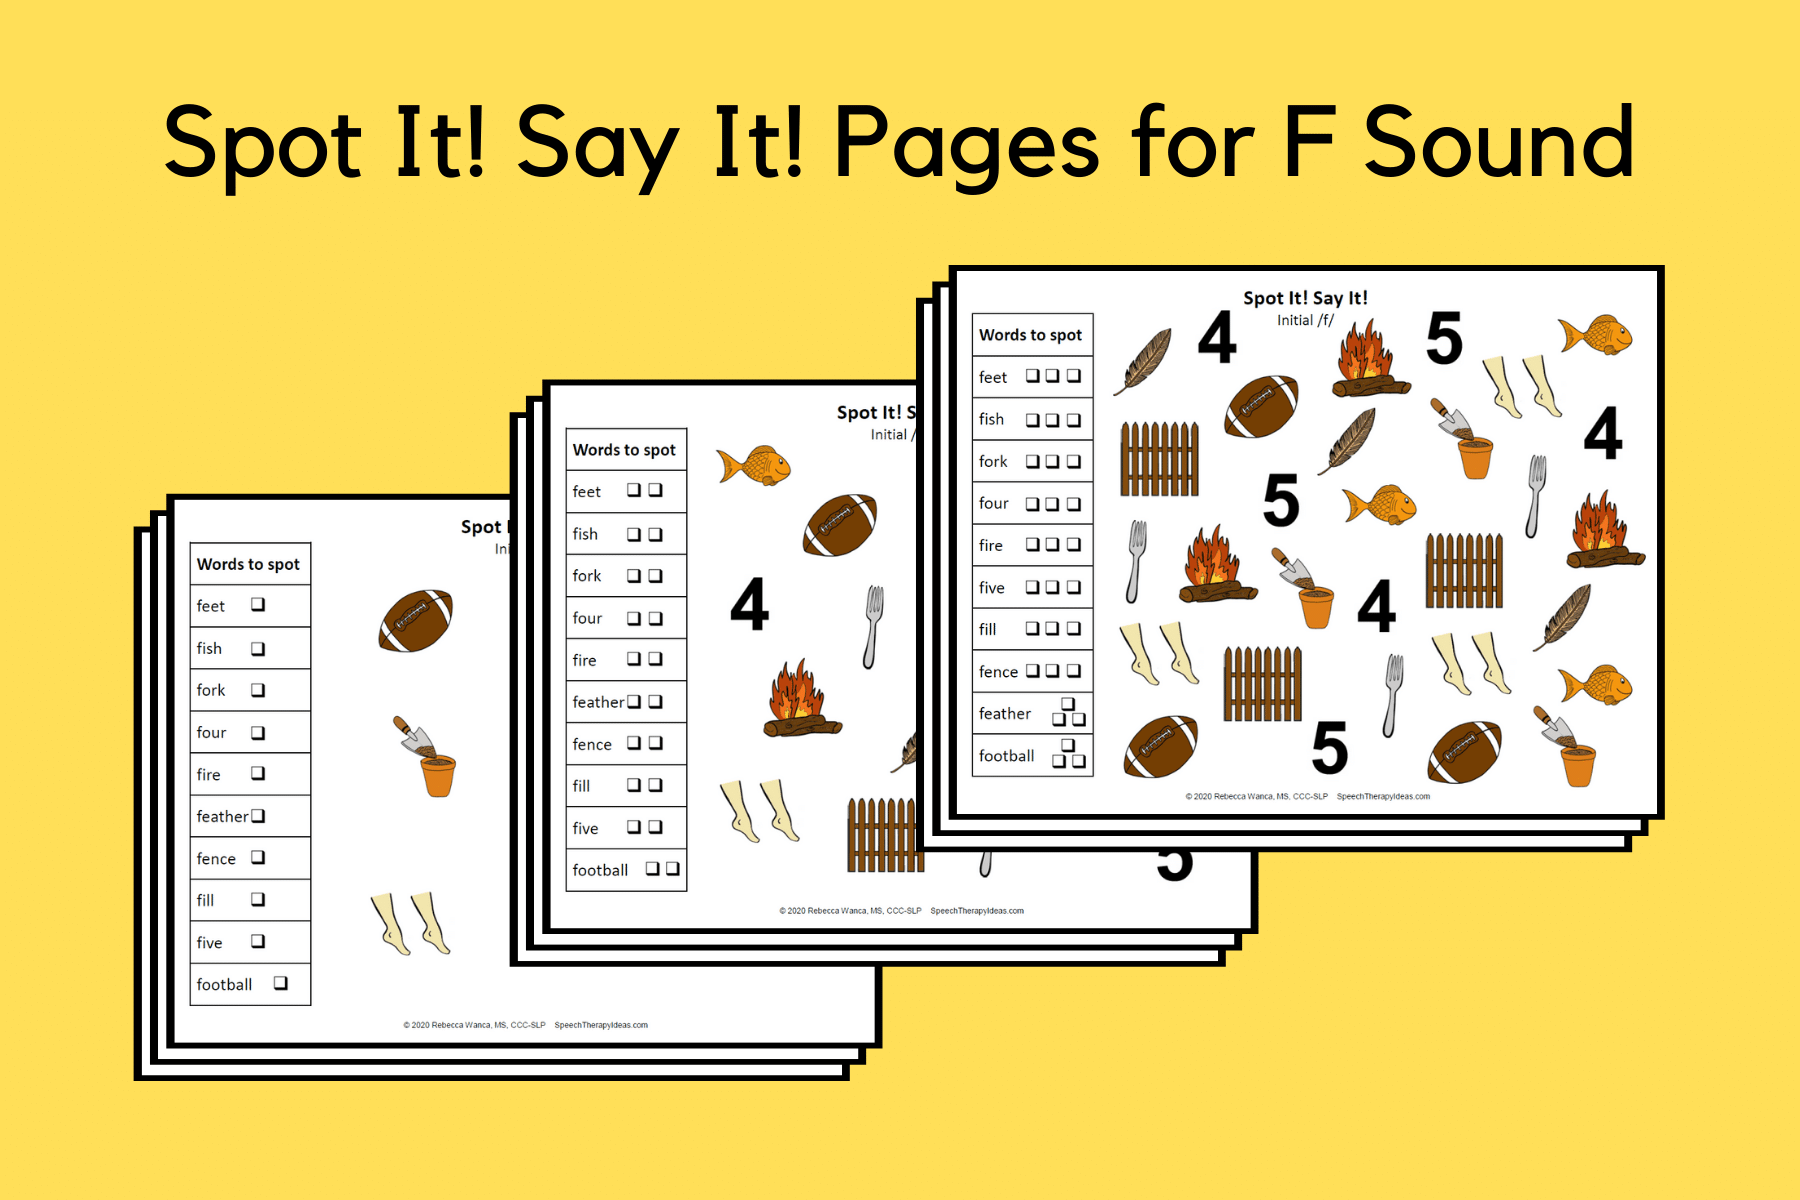 Spot It! Say It! Pages For F Sound